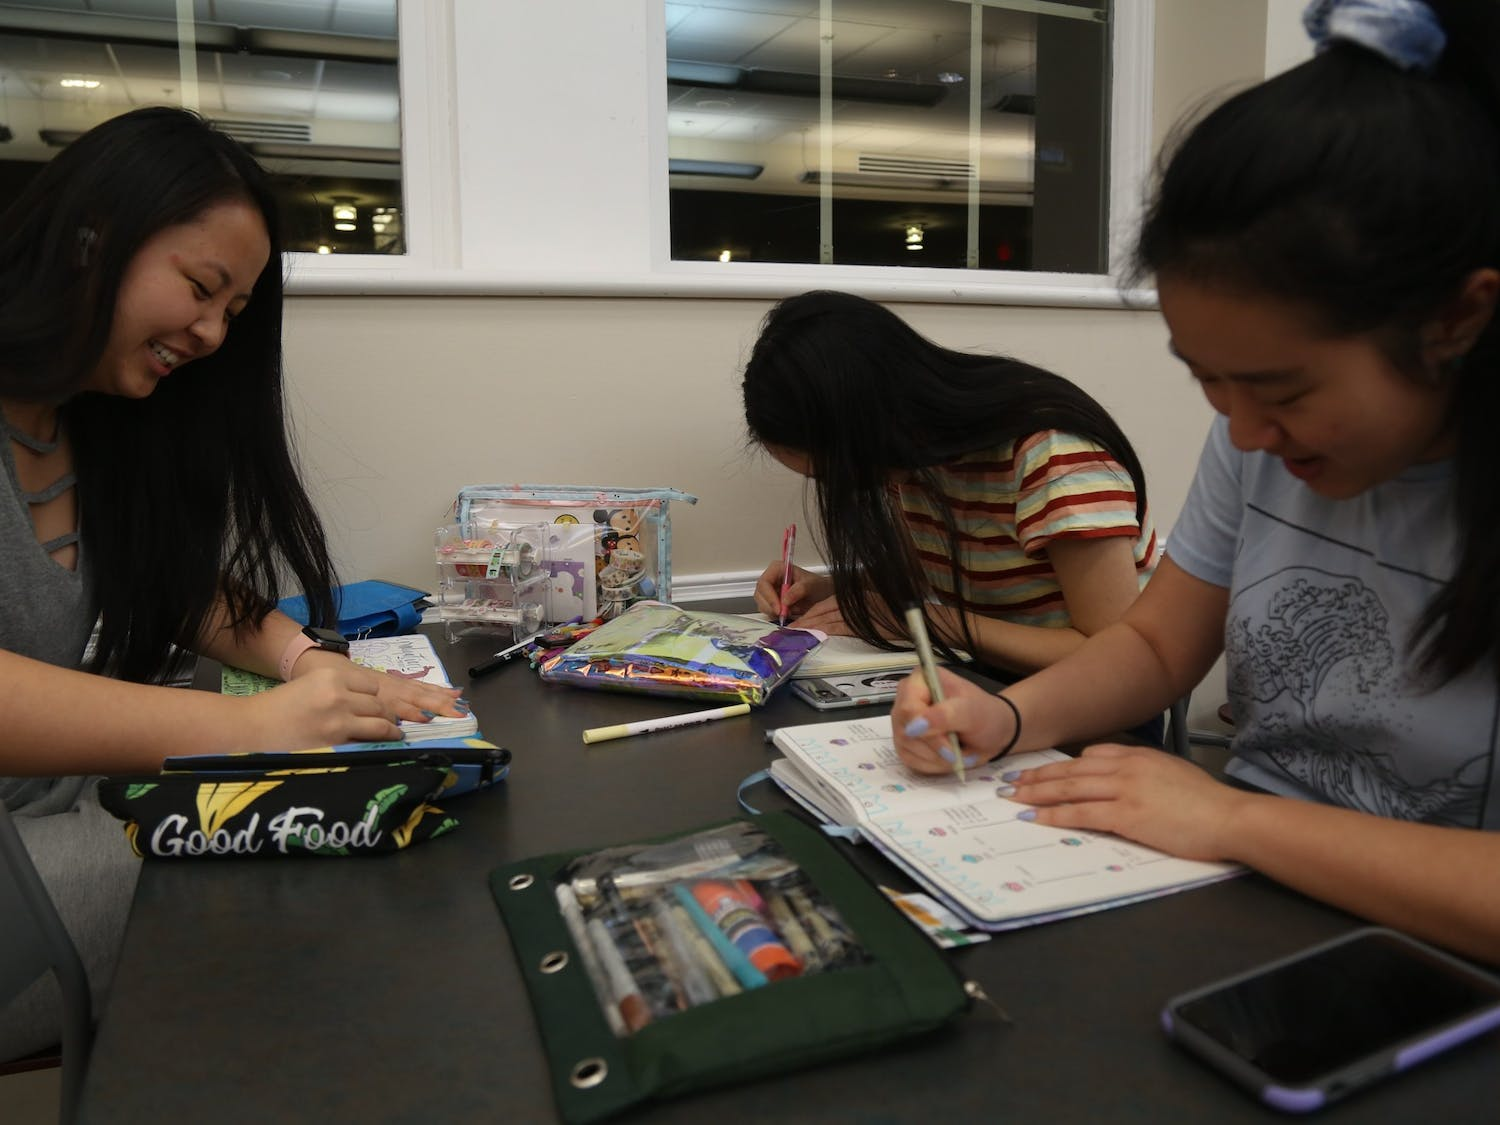 (From left) Jessie Zheng, first-year biology student, Claire Liang, first-year pre-nutrition student, and Liya Chen, first-year chemistry student work, on their bullet journals together in Lenoir Dining Hall at UNC-Chapel Hill on Monday, March 2, 2020.